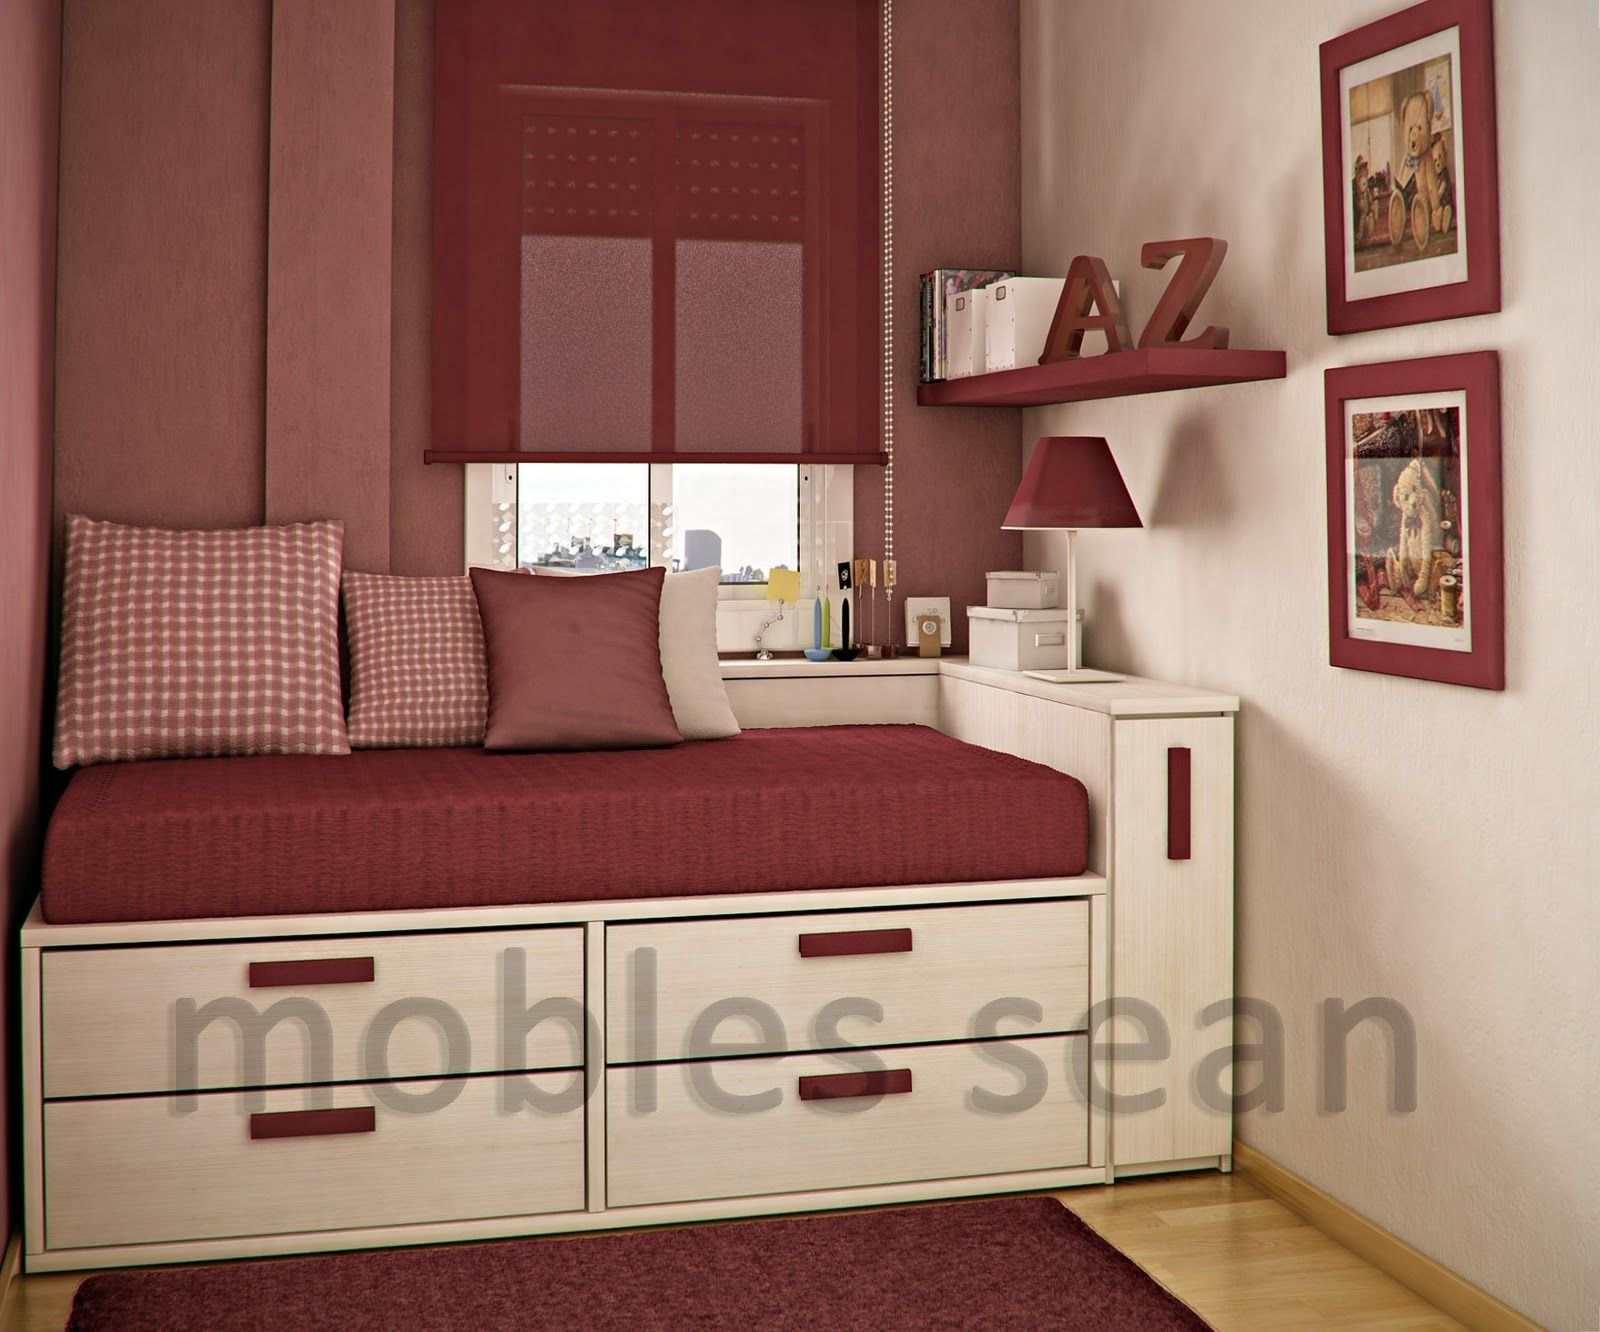 Quartos Pequenos Aukimia Small Room Design Very Small Bedroom Small Room Bedroom